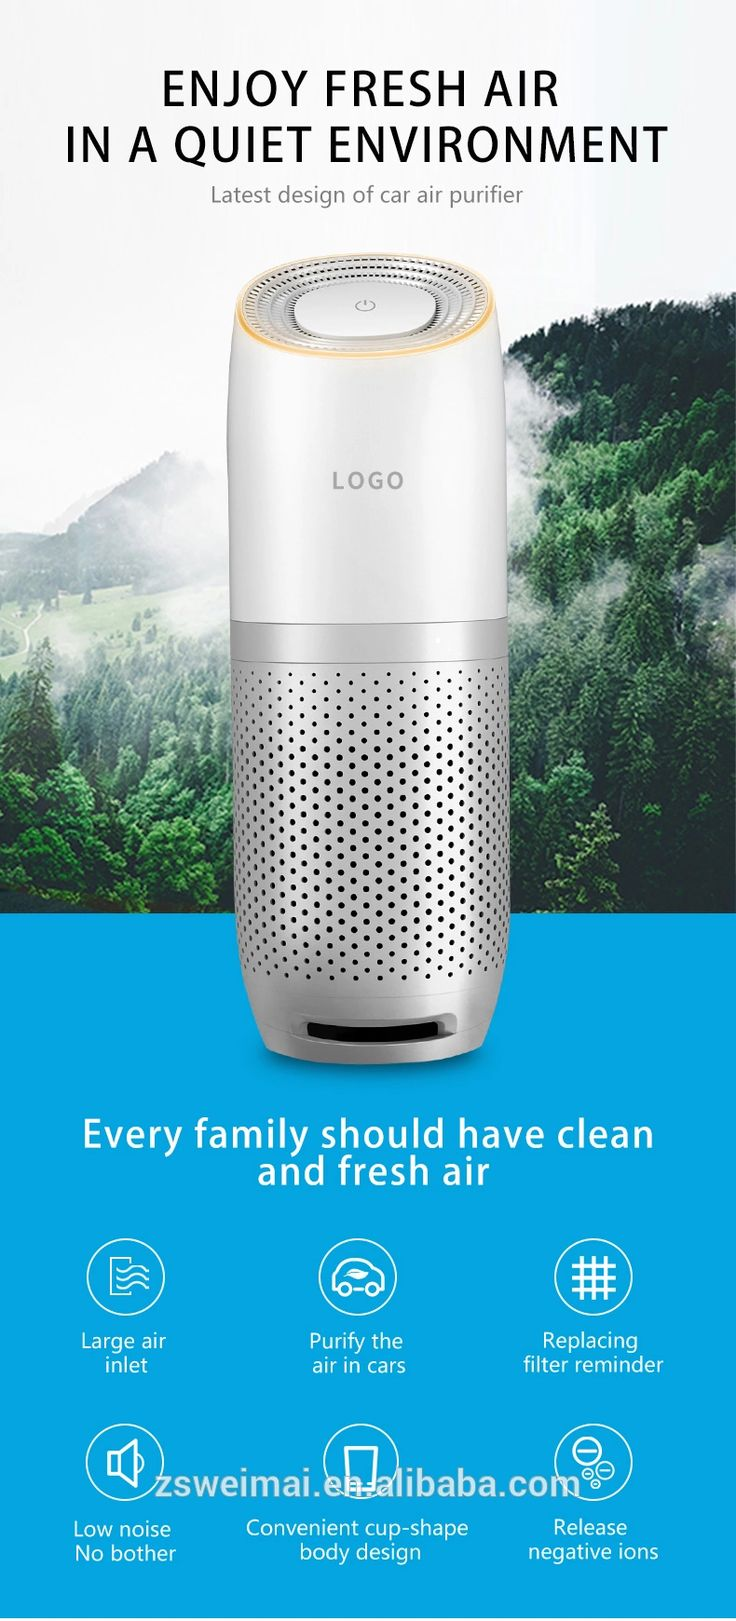 Latest design with hepa filter car air purifier, View Air